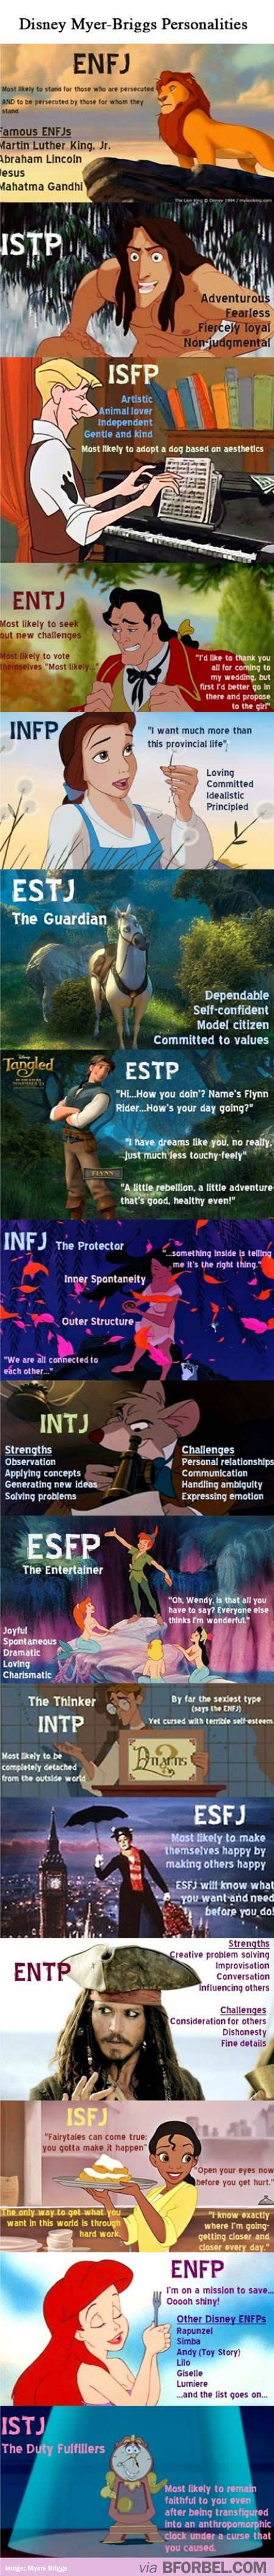 Yess!! I always knew I had a special connection to pocahontas!! My favorite disney princess!!!